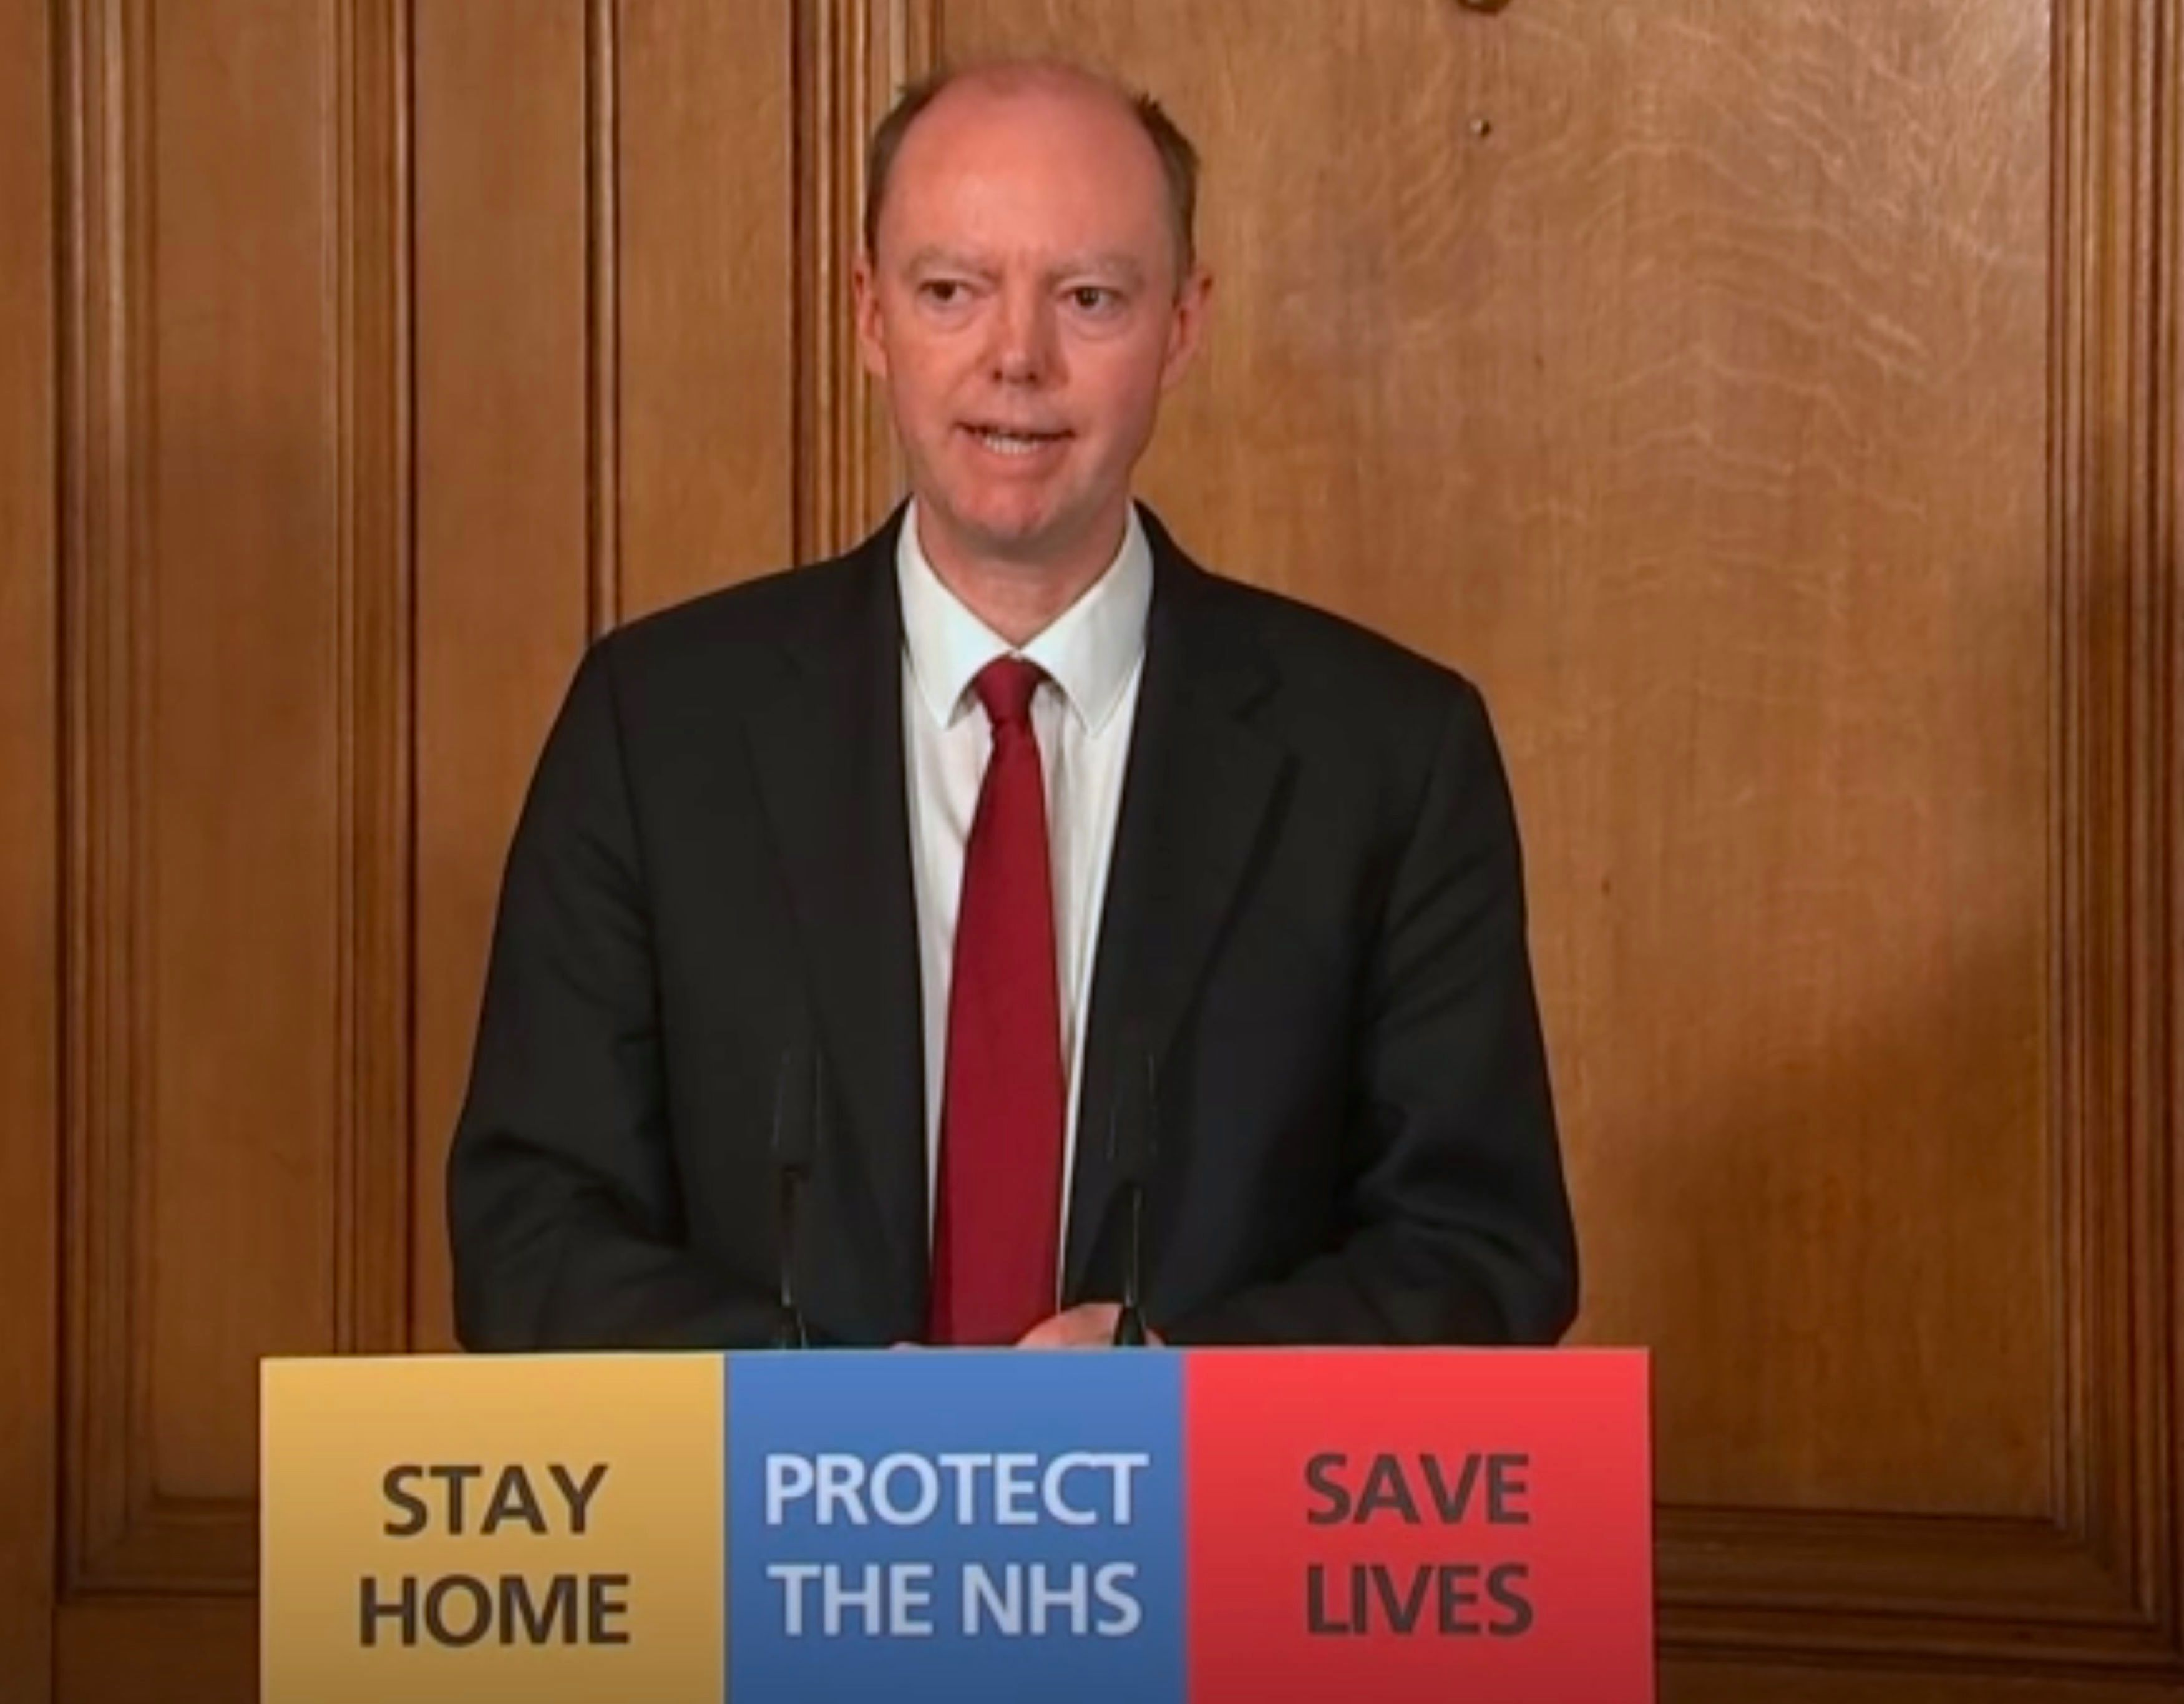 England's top doctor Chris Whitty urged all Brits to do their bit to reduce pressure on the NHS